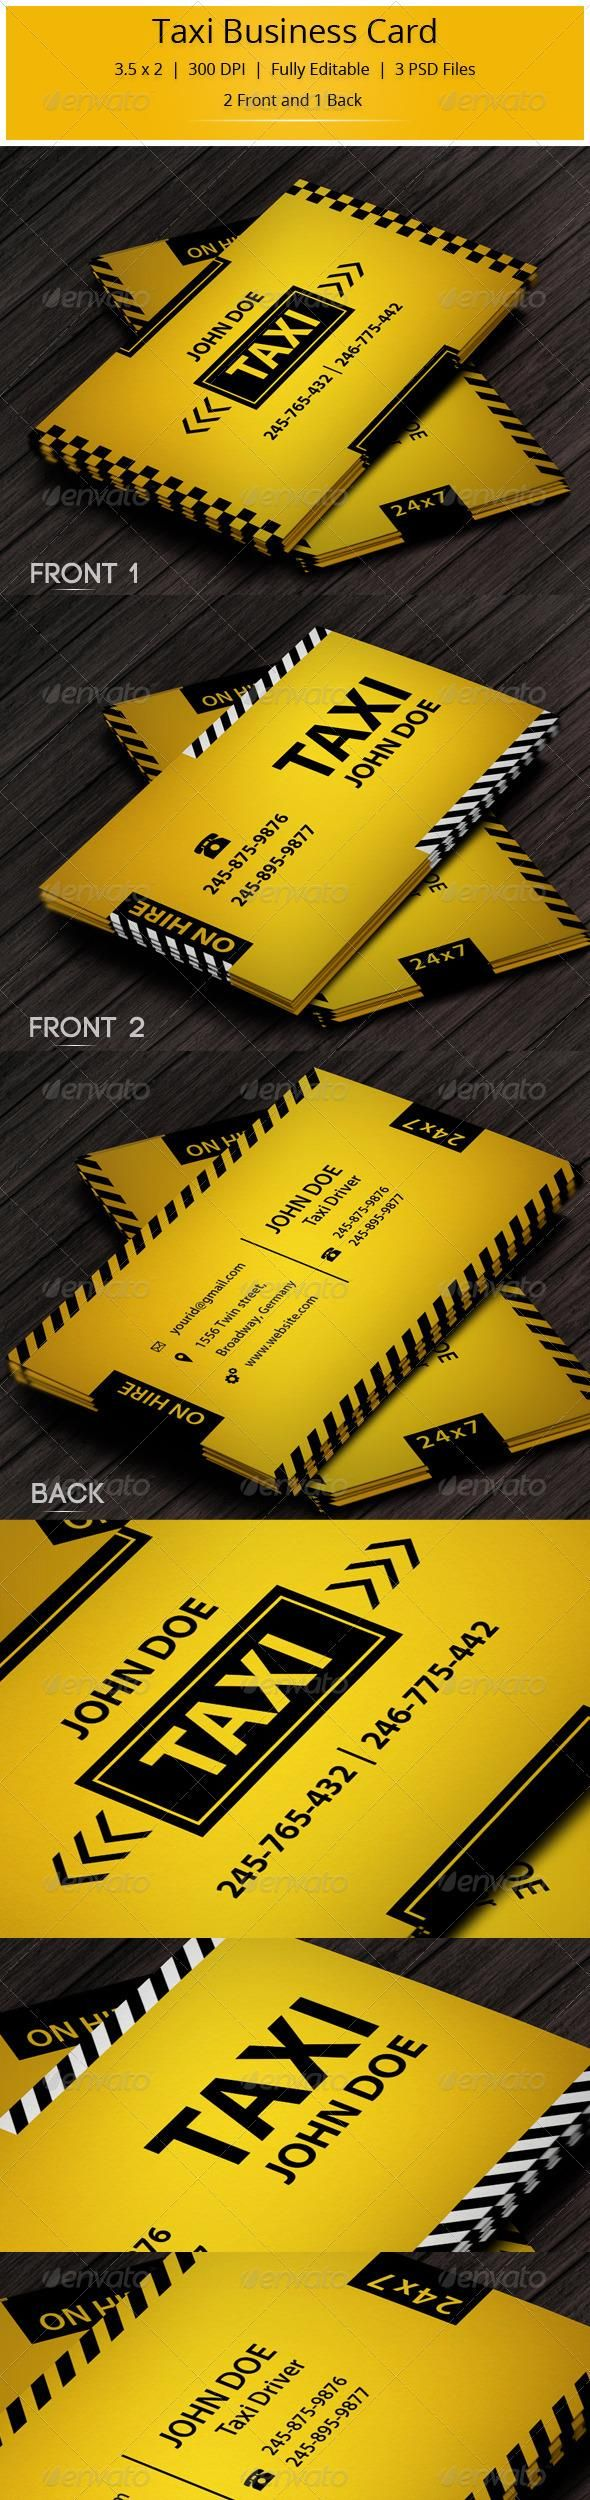 1676 best best business cards on pinterest images on pinterest taxi business card magicingreecefo Image collections